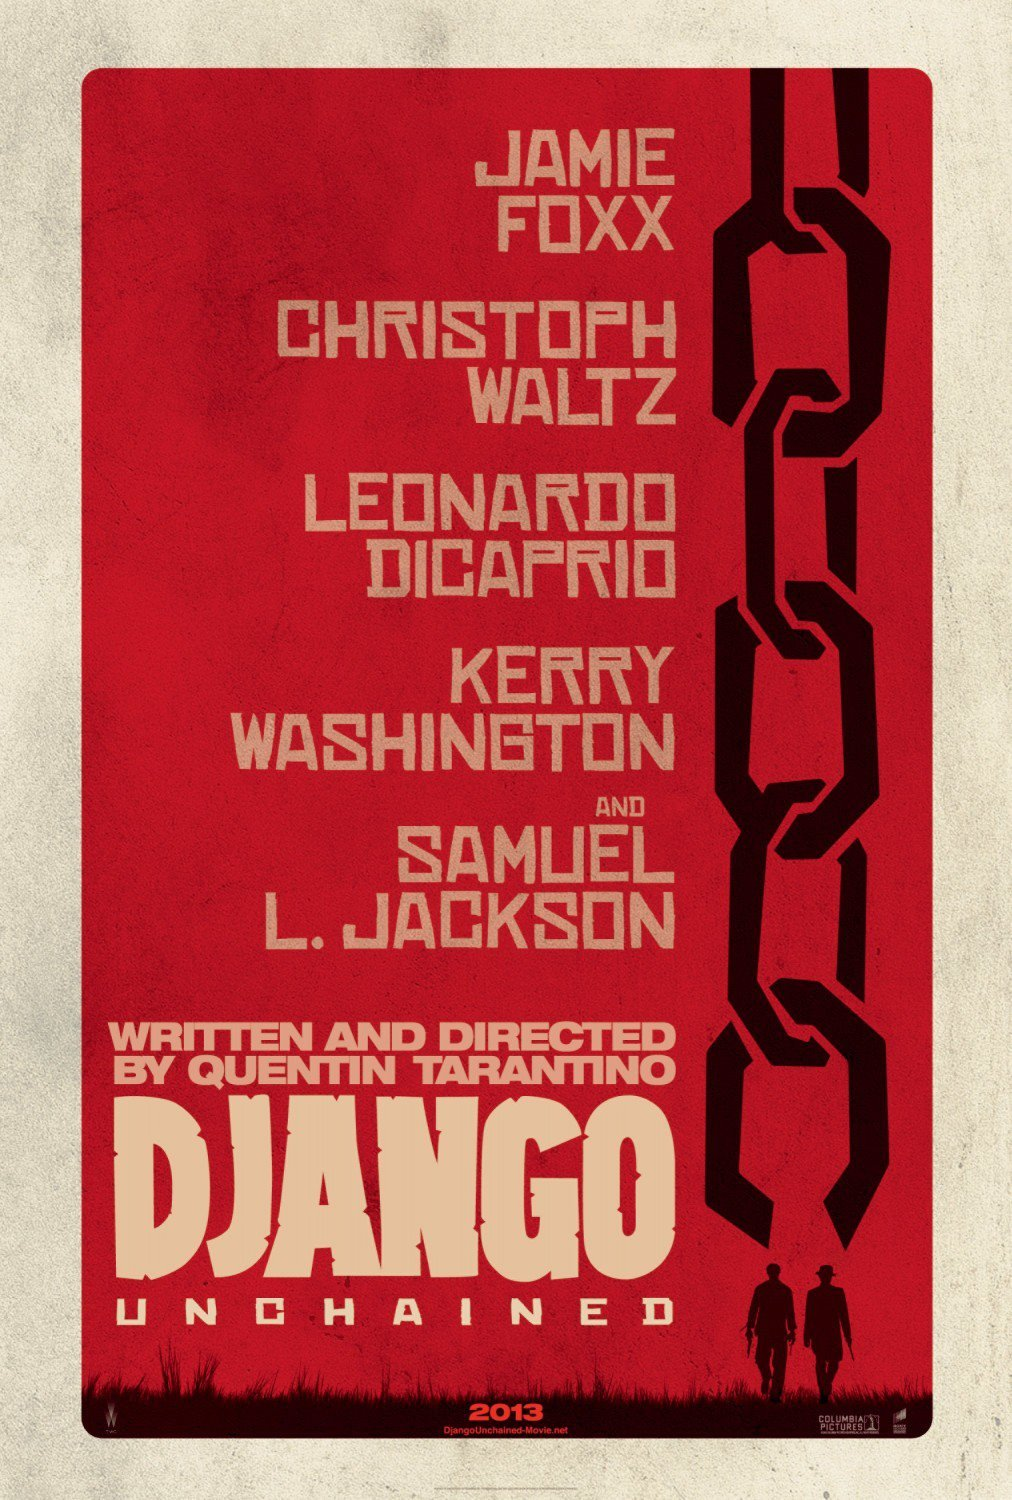 Django Unchained It was great. It had all the cool elements I expected. There were funny parts, great characters, conversations, and things blowing up. Still, it didn't quite grab me….you know what I mean? I certainly don't.